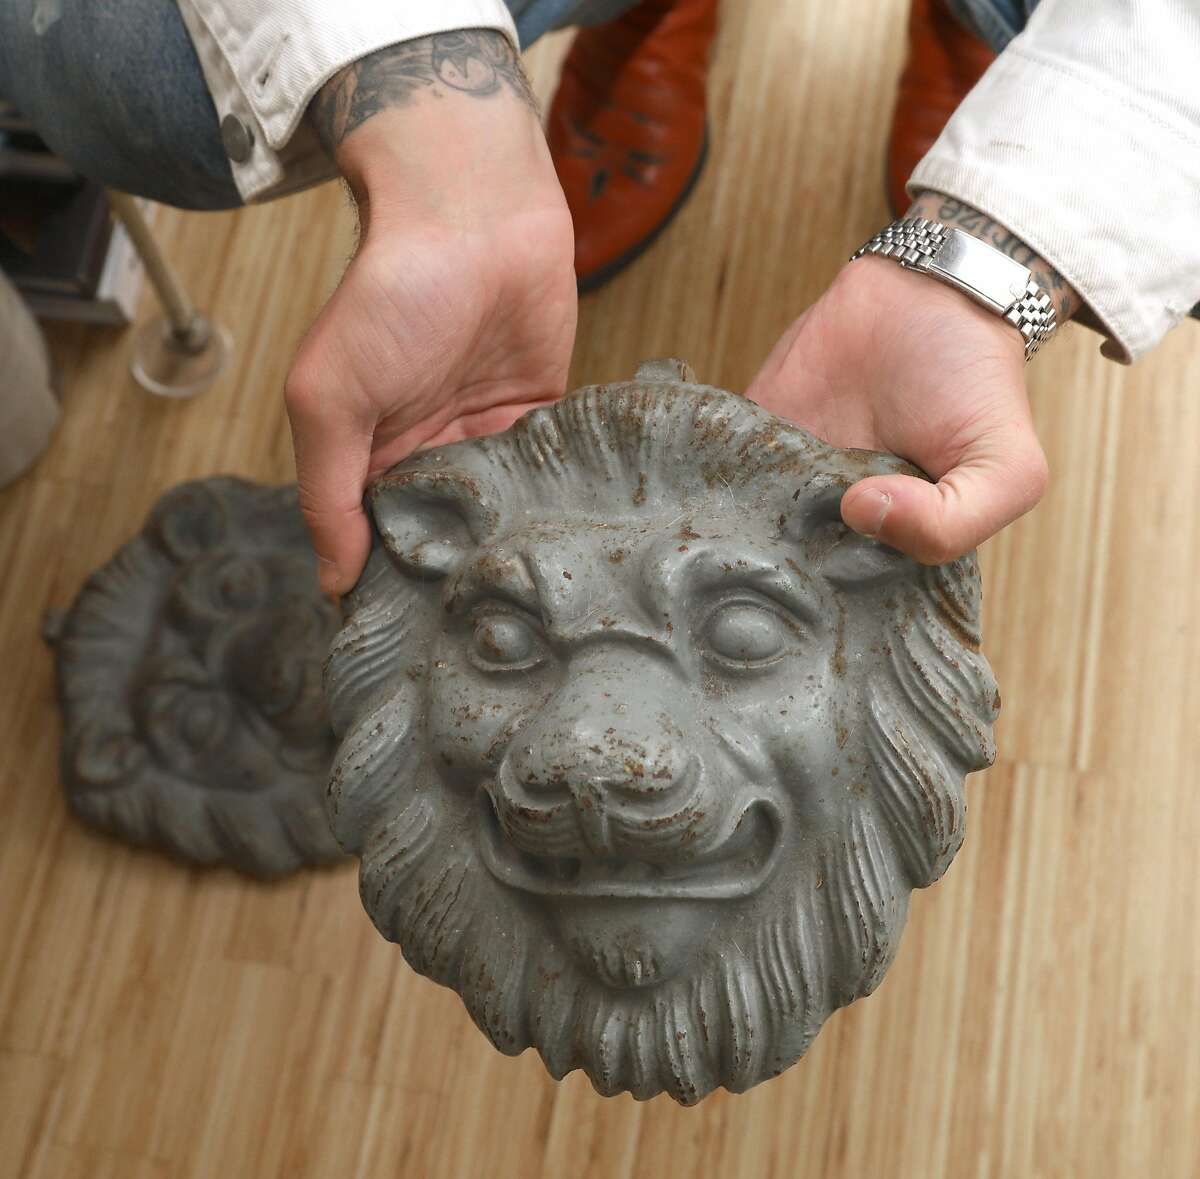 Josh Harris shows a pair of cast iron lion knockers picked up from Paris on Thursday, May 2, 2019, in San Francisco, Calif.